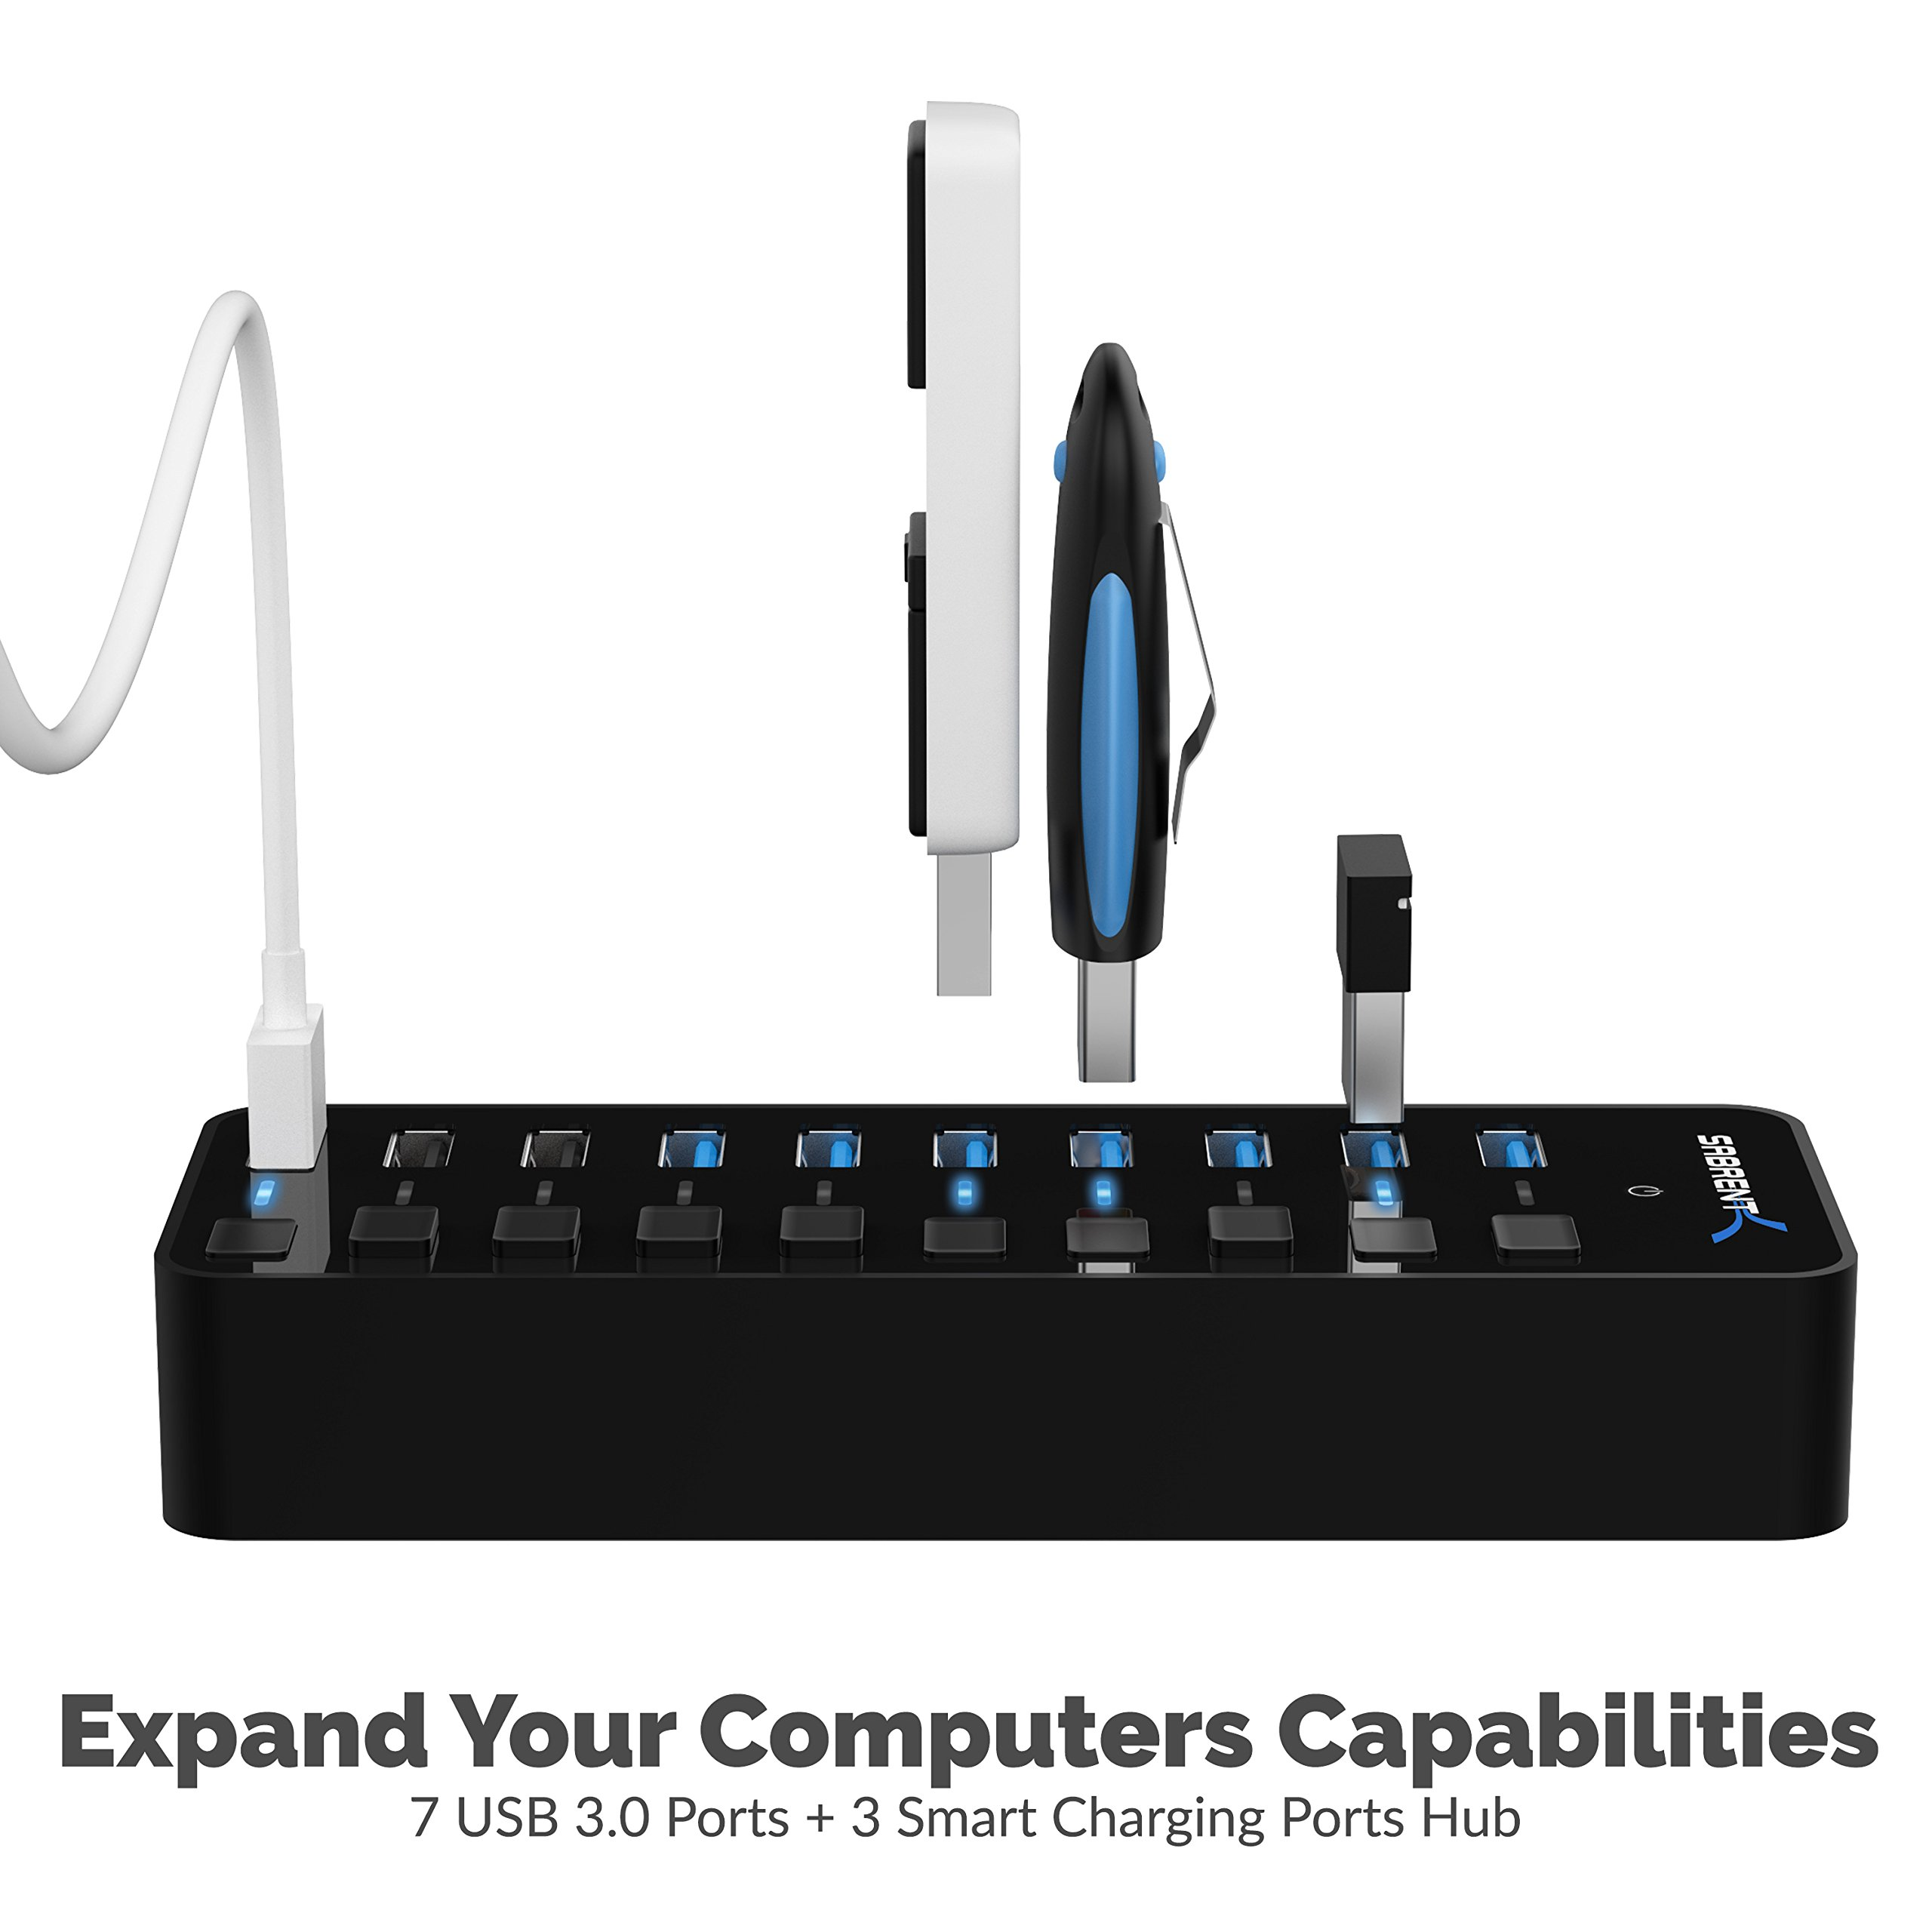 Sabrent 60W 7-Port USB 3.0 Hub + 3 Smart Charging Ports with Individual Power Switches and LEDs includes 60W 12V/5A power adapter (HB-B7C3) by Sabrent (Image #2)